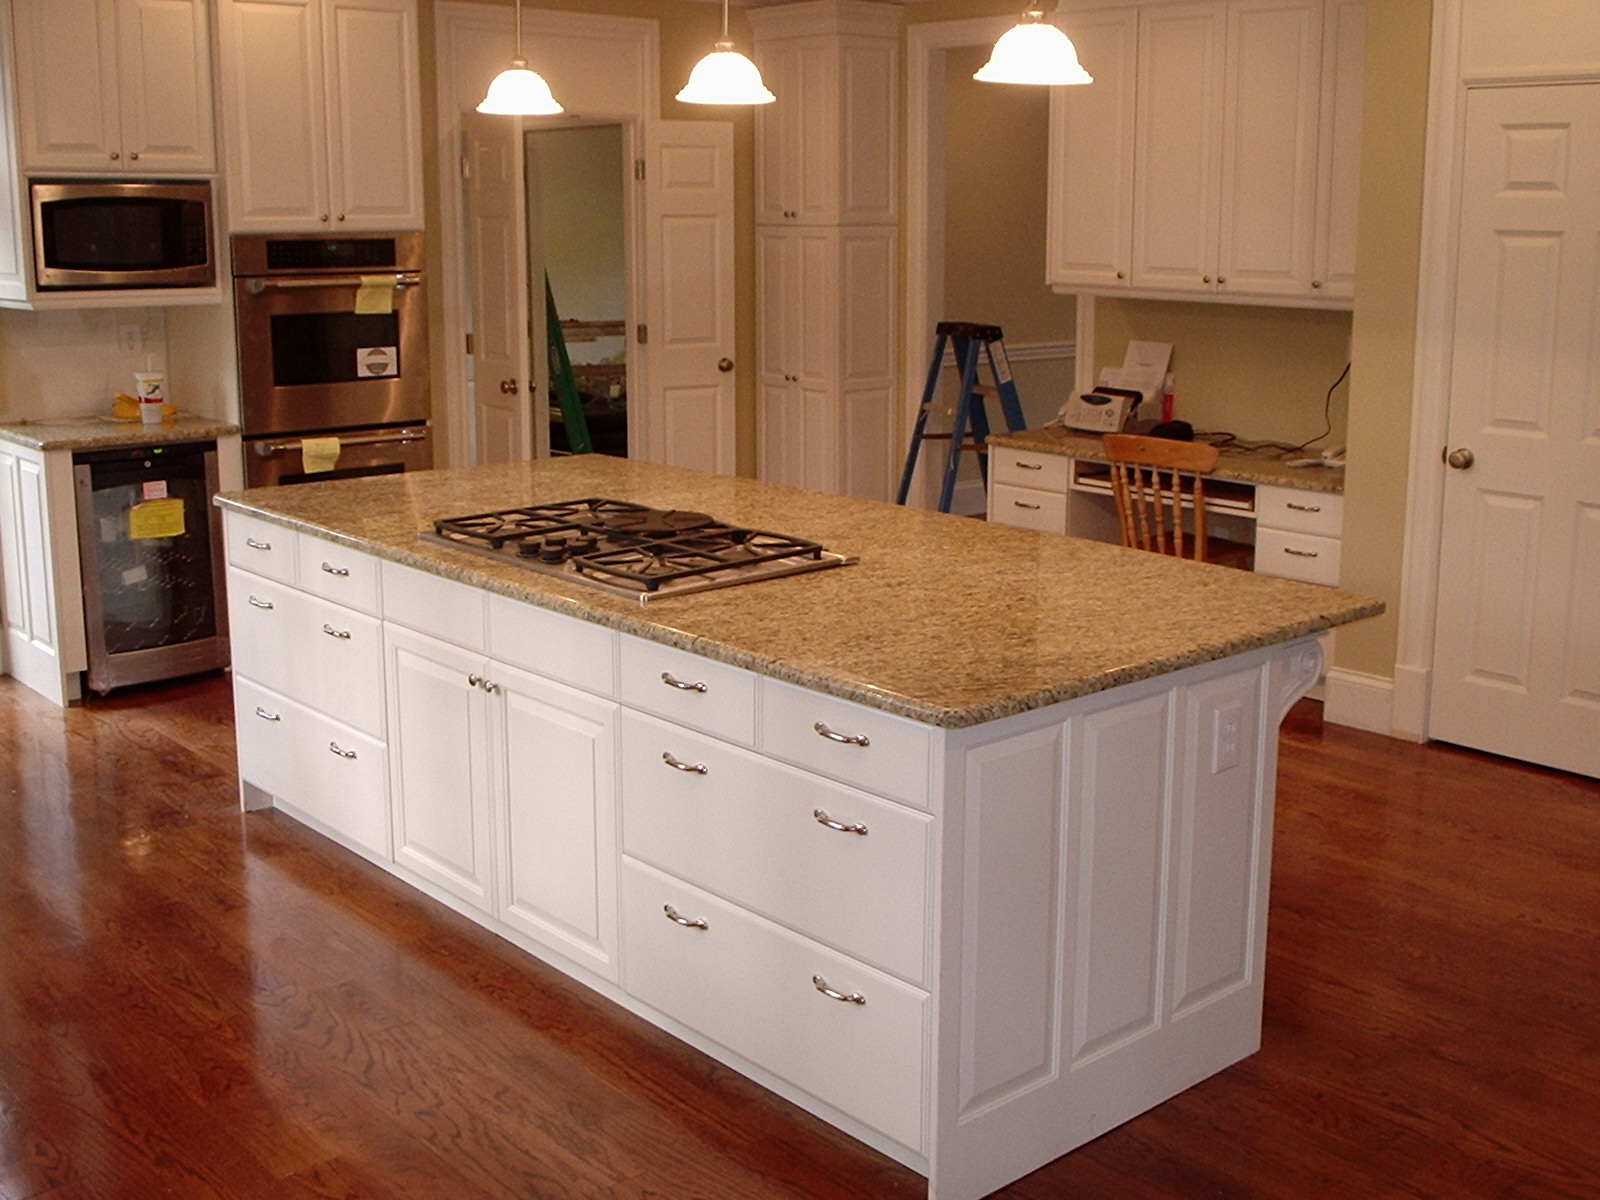 Kitchen cabinet plans dream house experience for Kitchen island cabinet plans